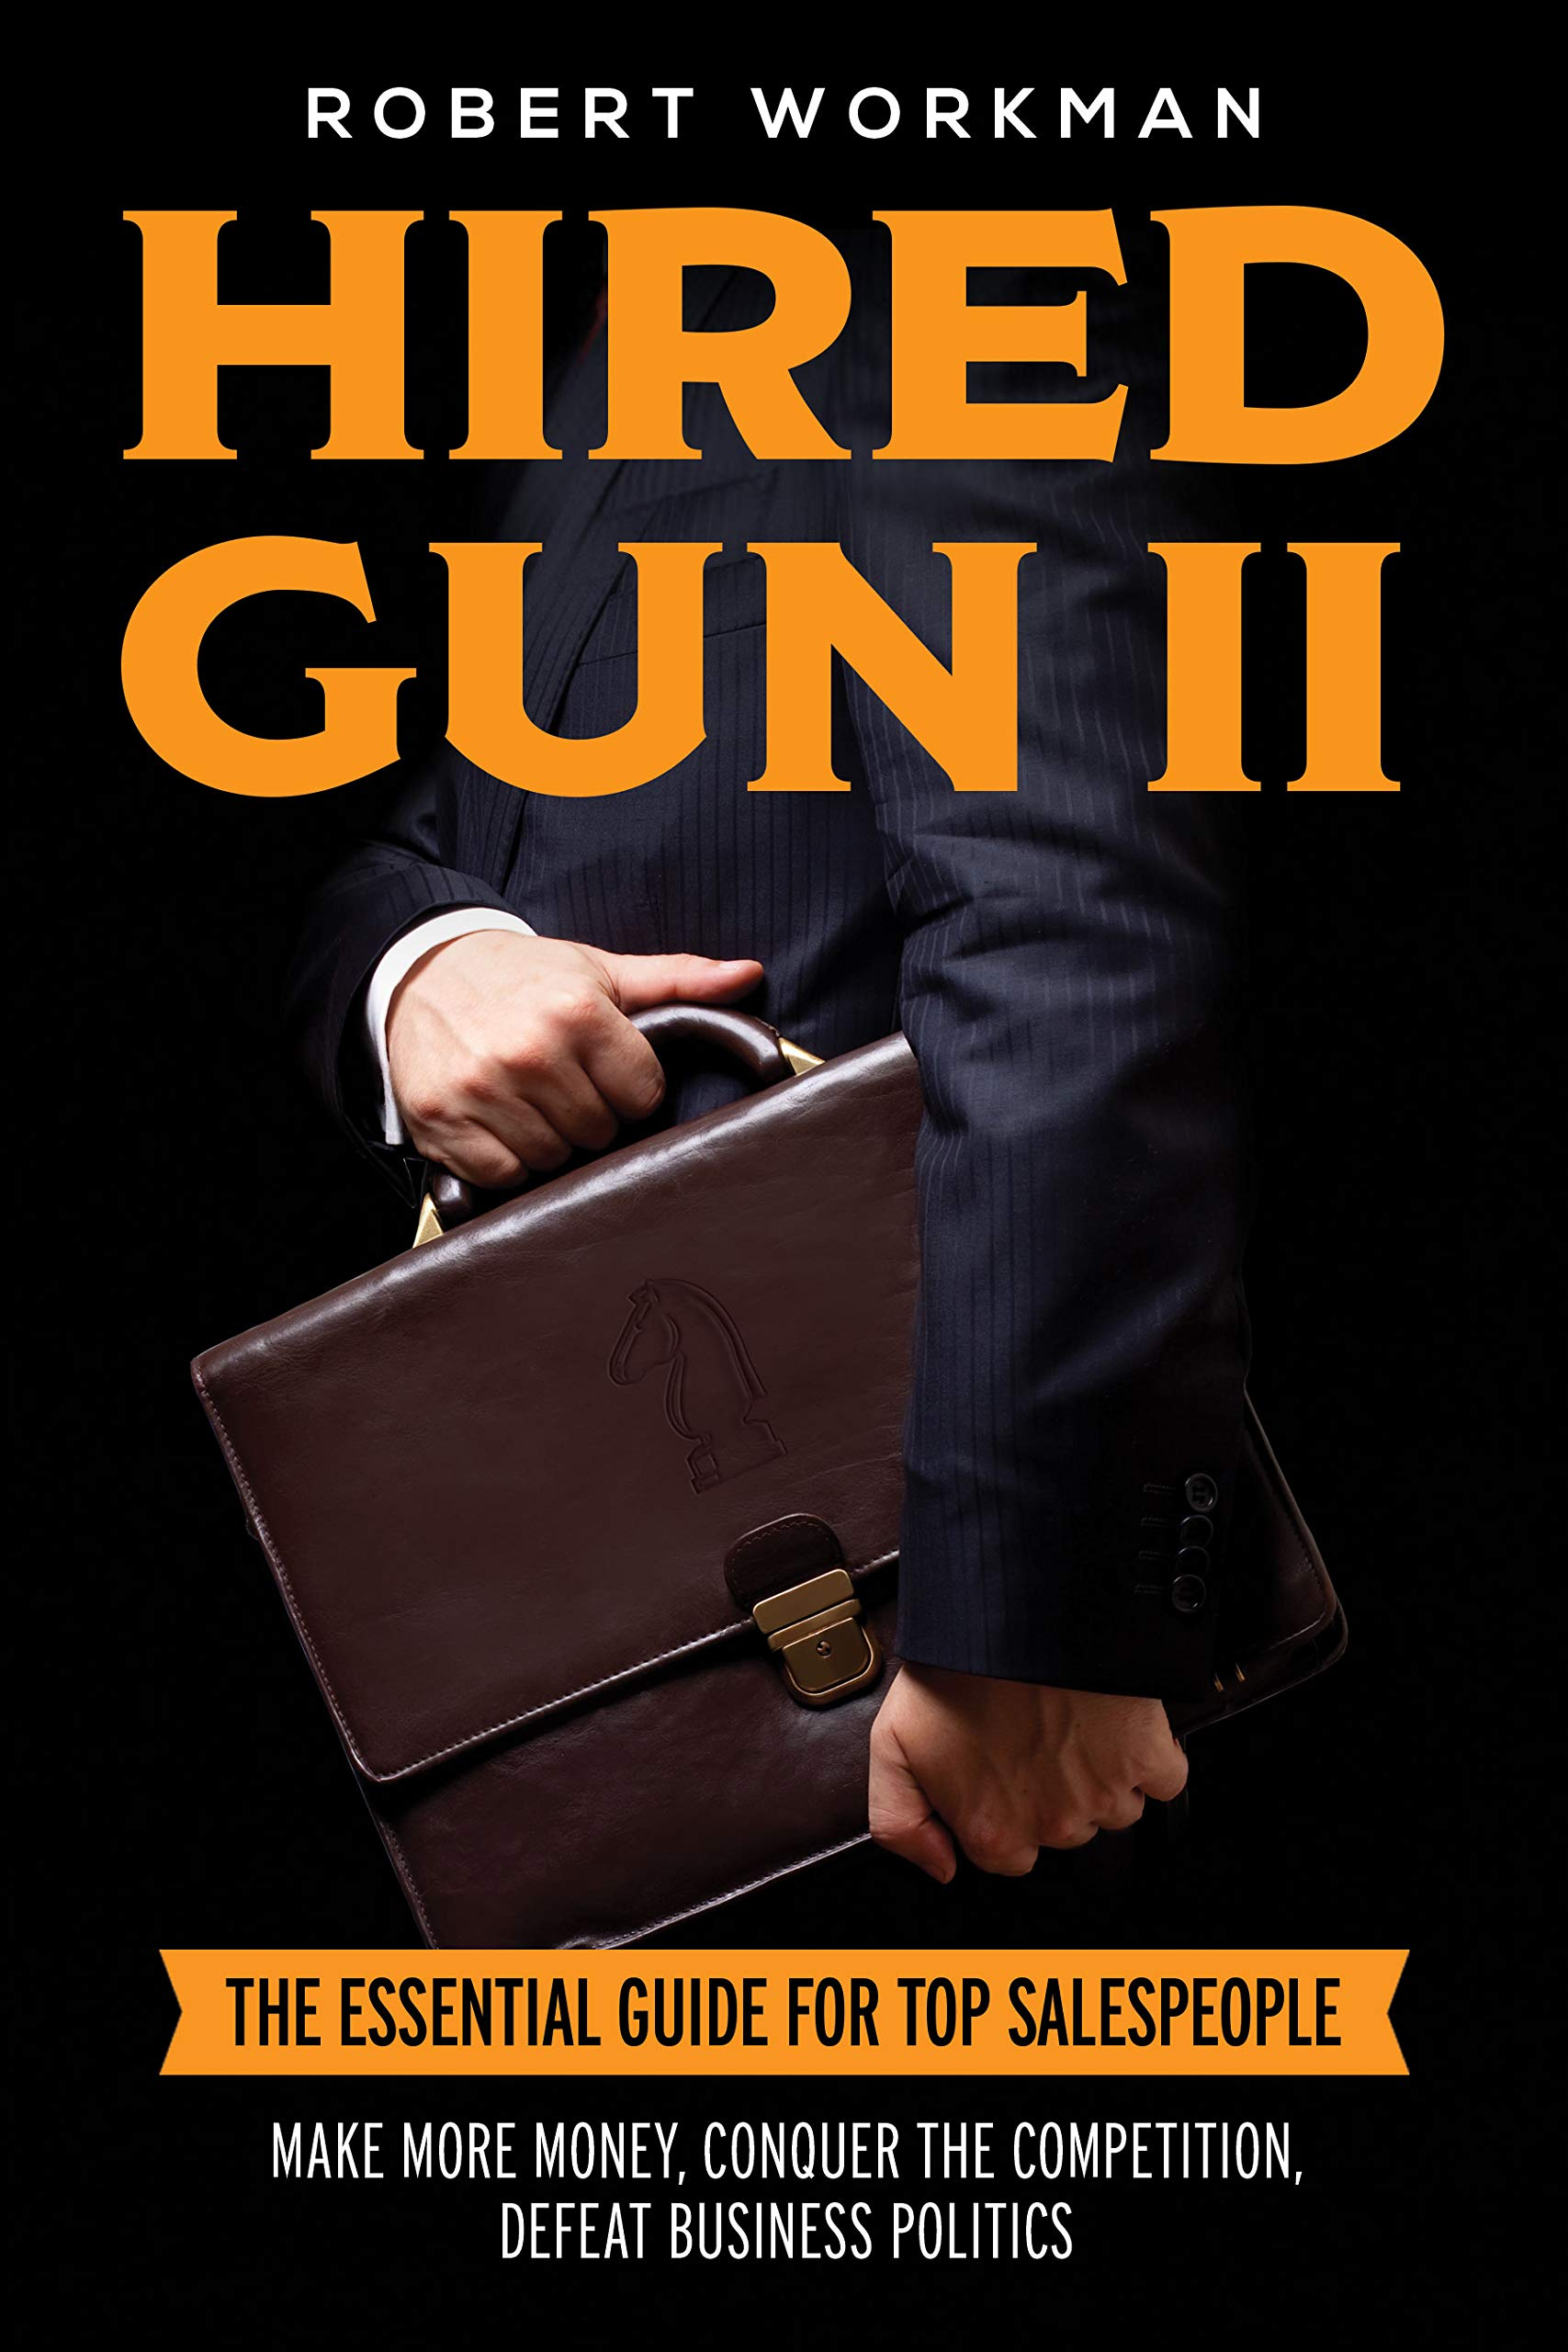 Hired Gun II: The Essential Guide for Top Salespeople to Make More Money, Conquer the Competition, and Defeat Business Politics